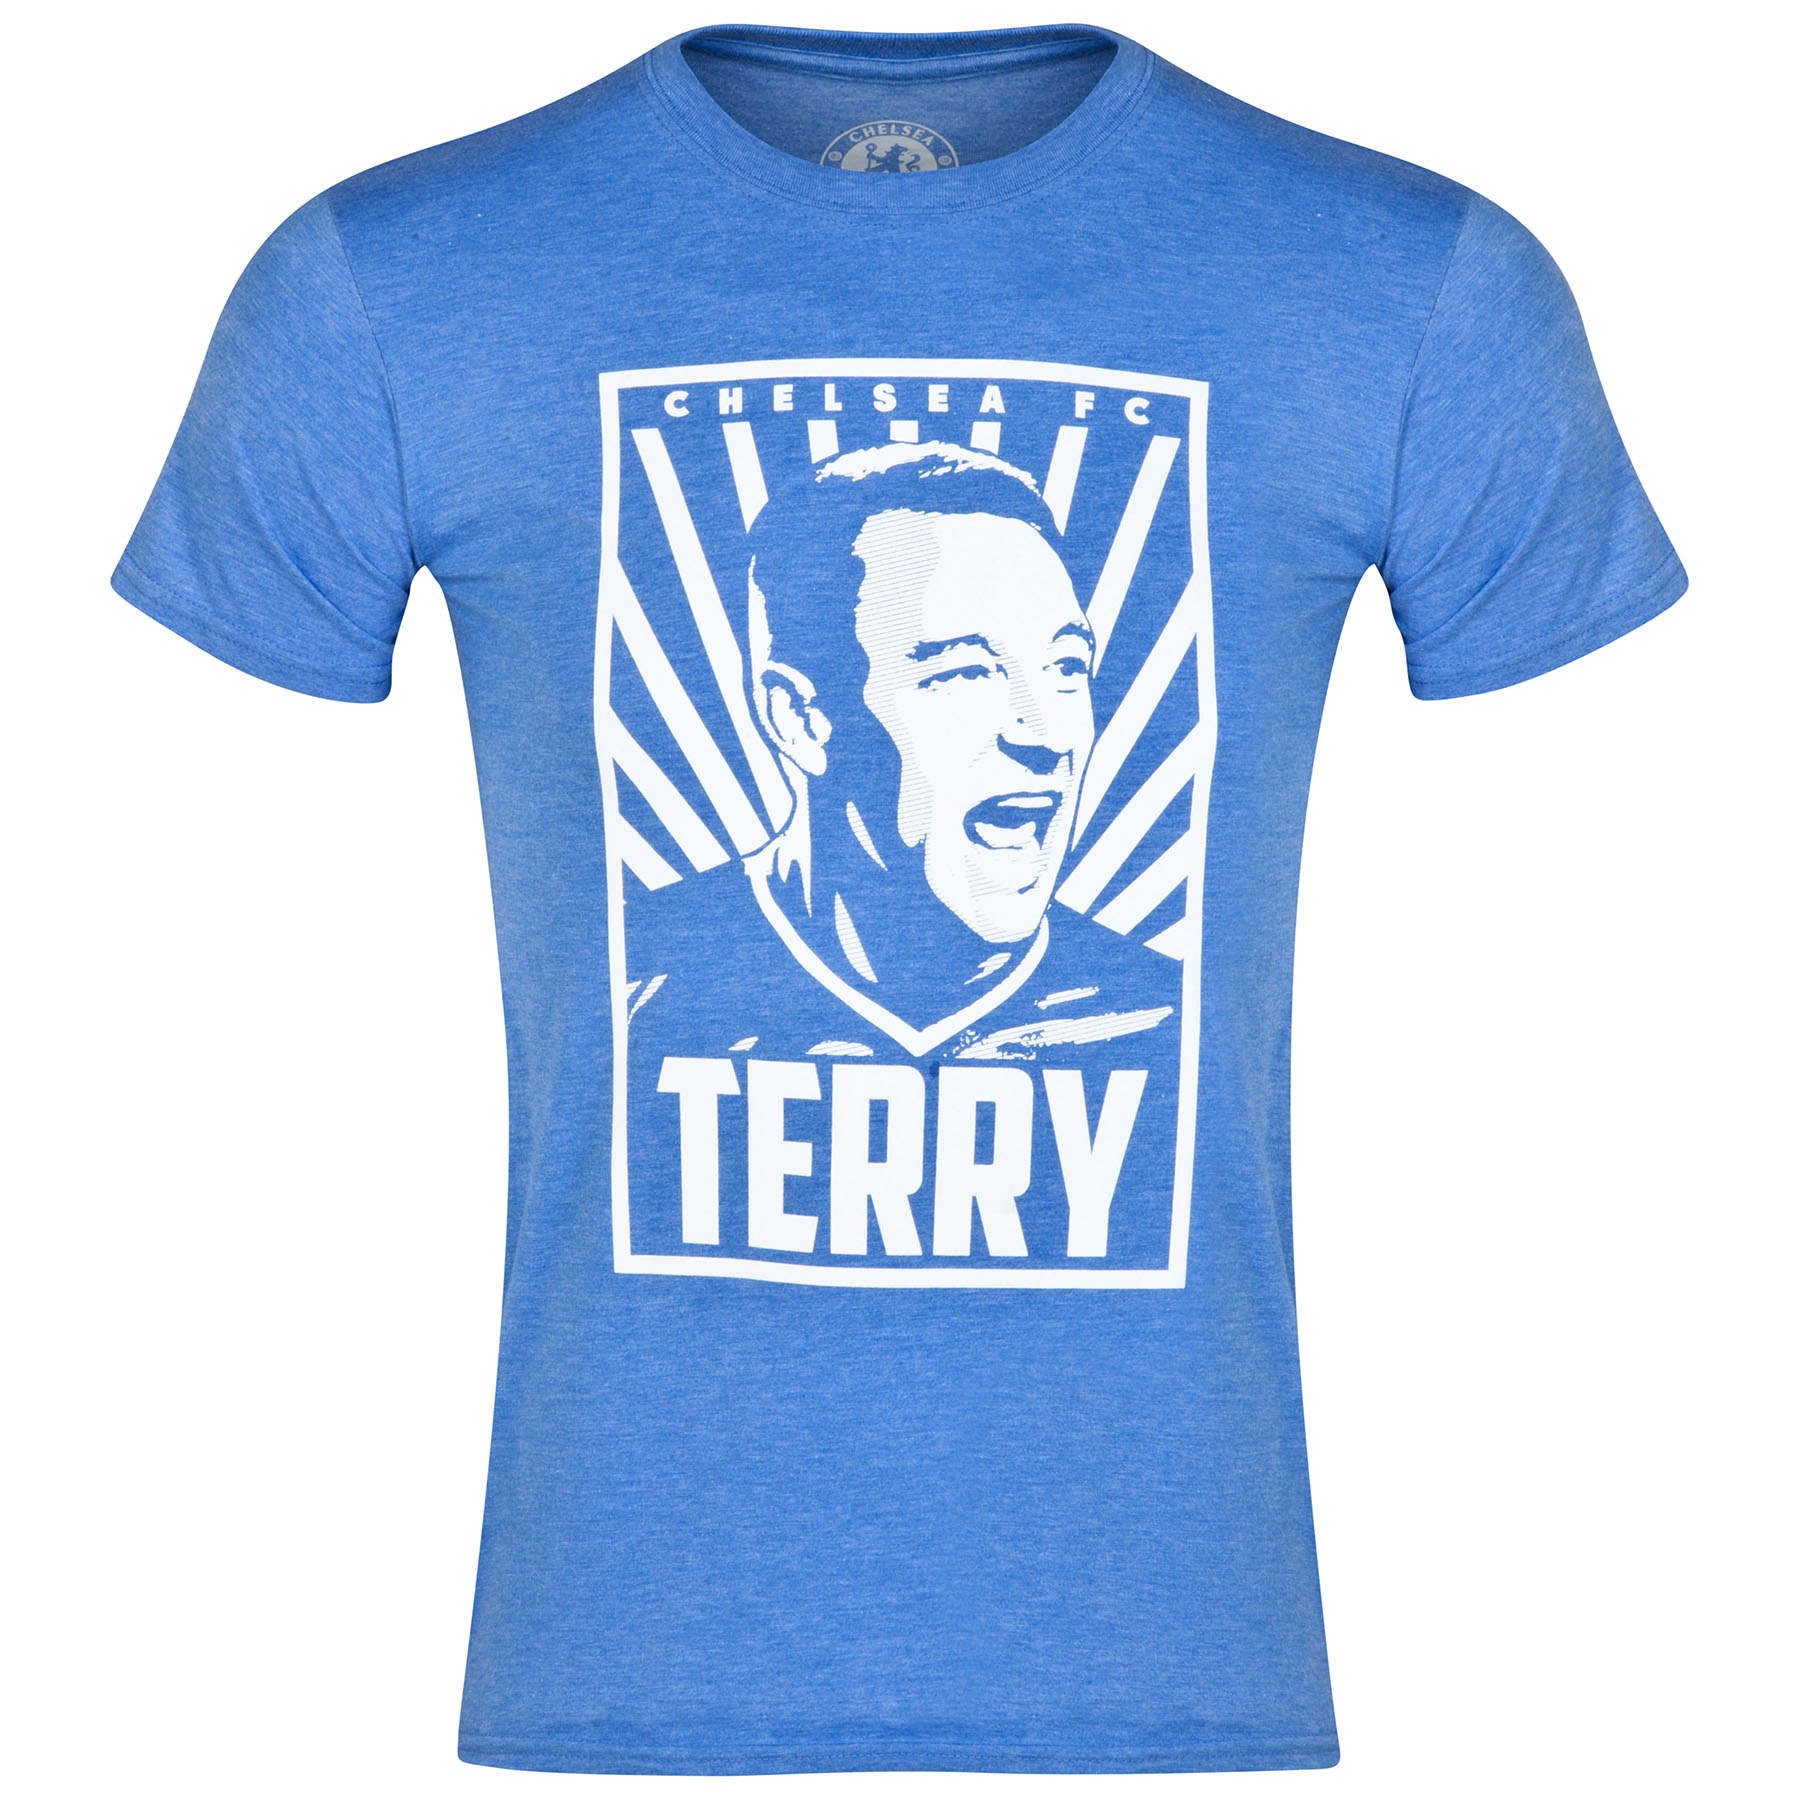 Chelsea Terry T-Shirt - Heather Royal - Mens